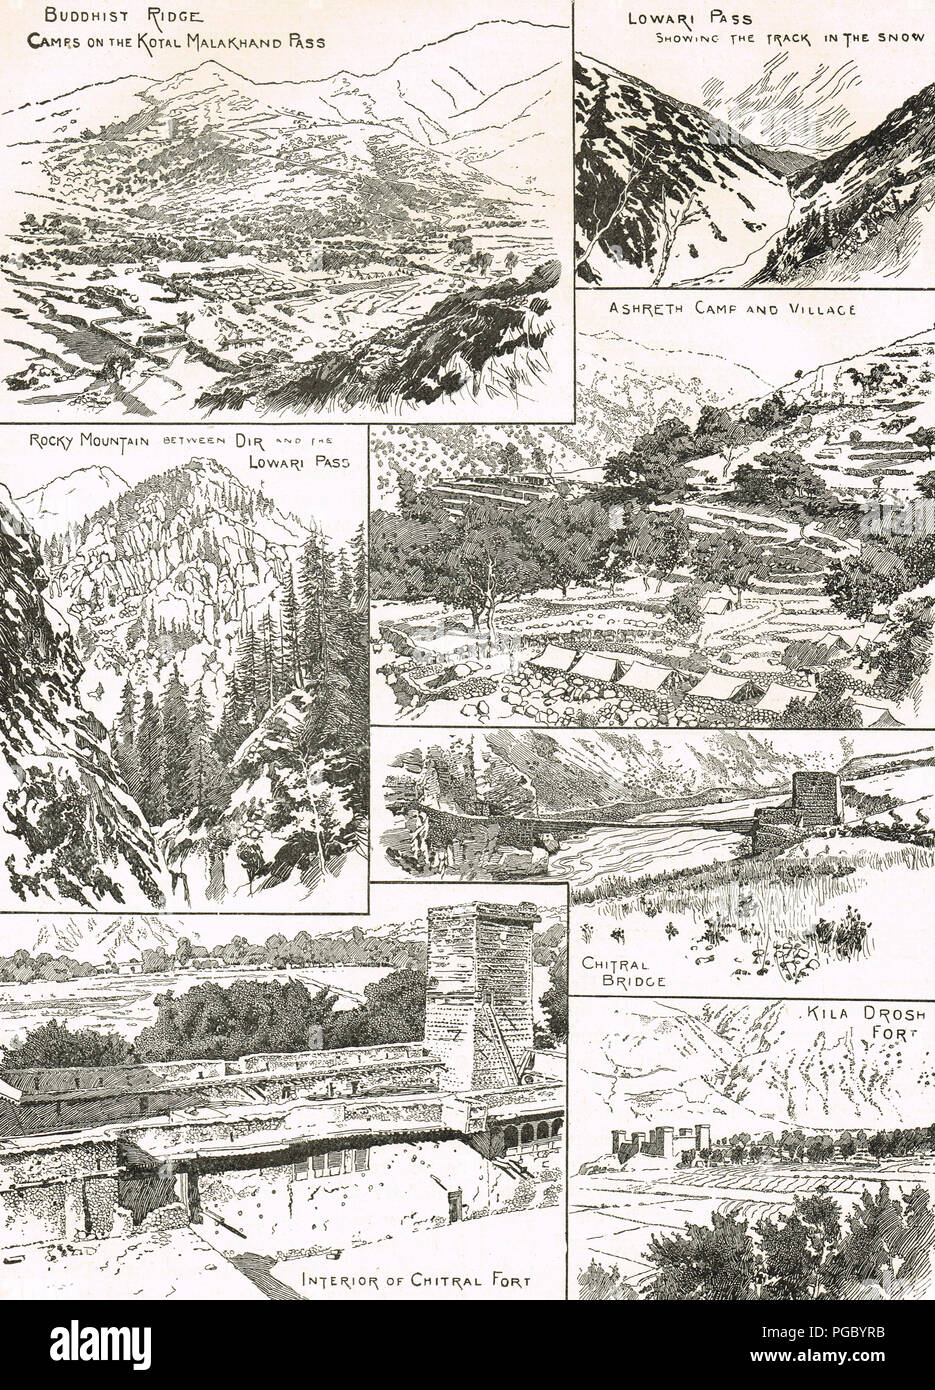 Locations during the Indian frontier wars in 1897–1898.  Buddhist ridge, Malakand pass, Lowari pass, Ashreth camp, Chitral bridge, Chitral fort, Kila Drosh fort - Stock Image